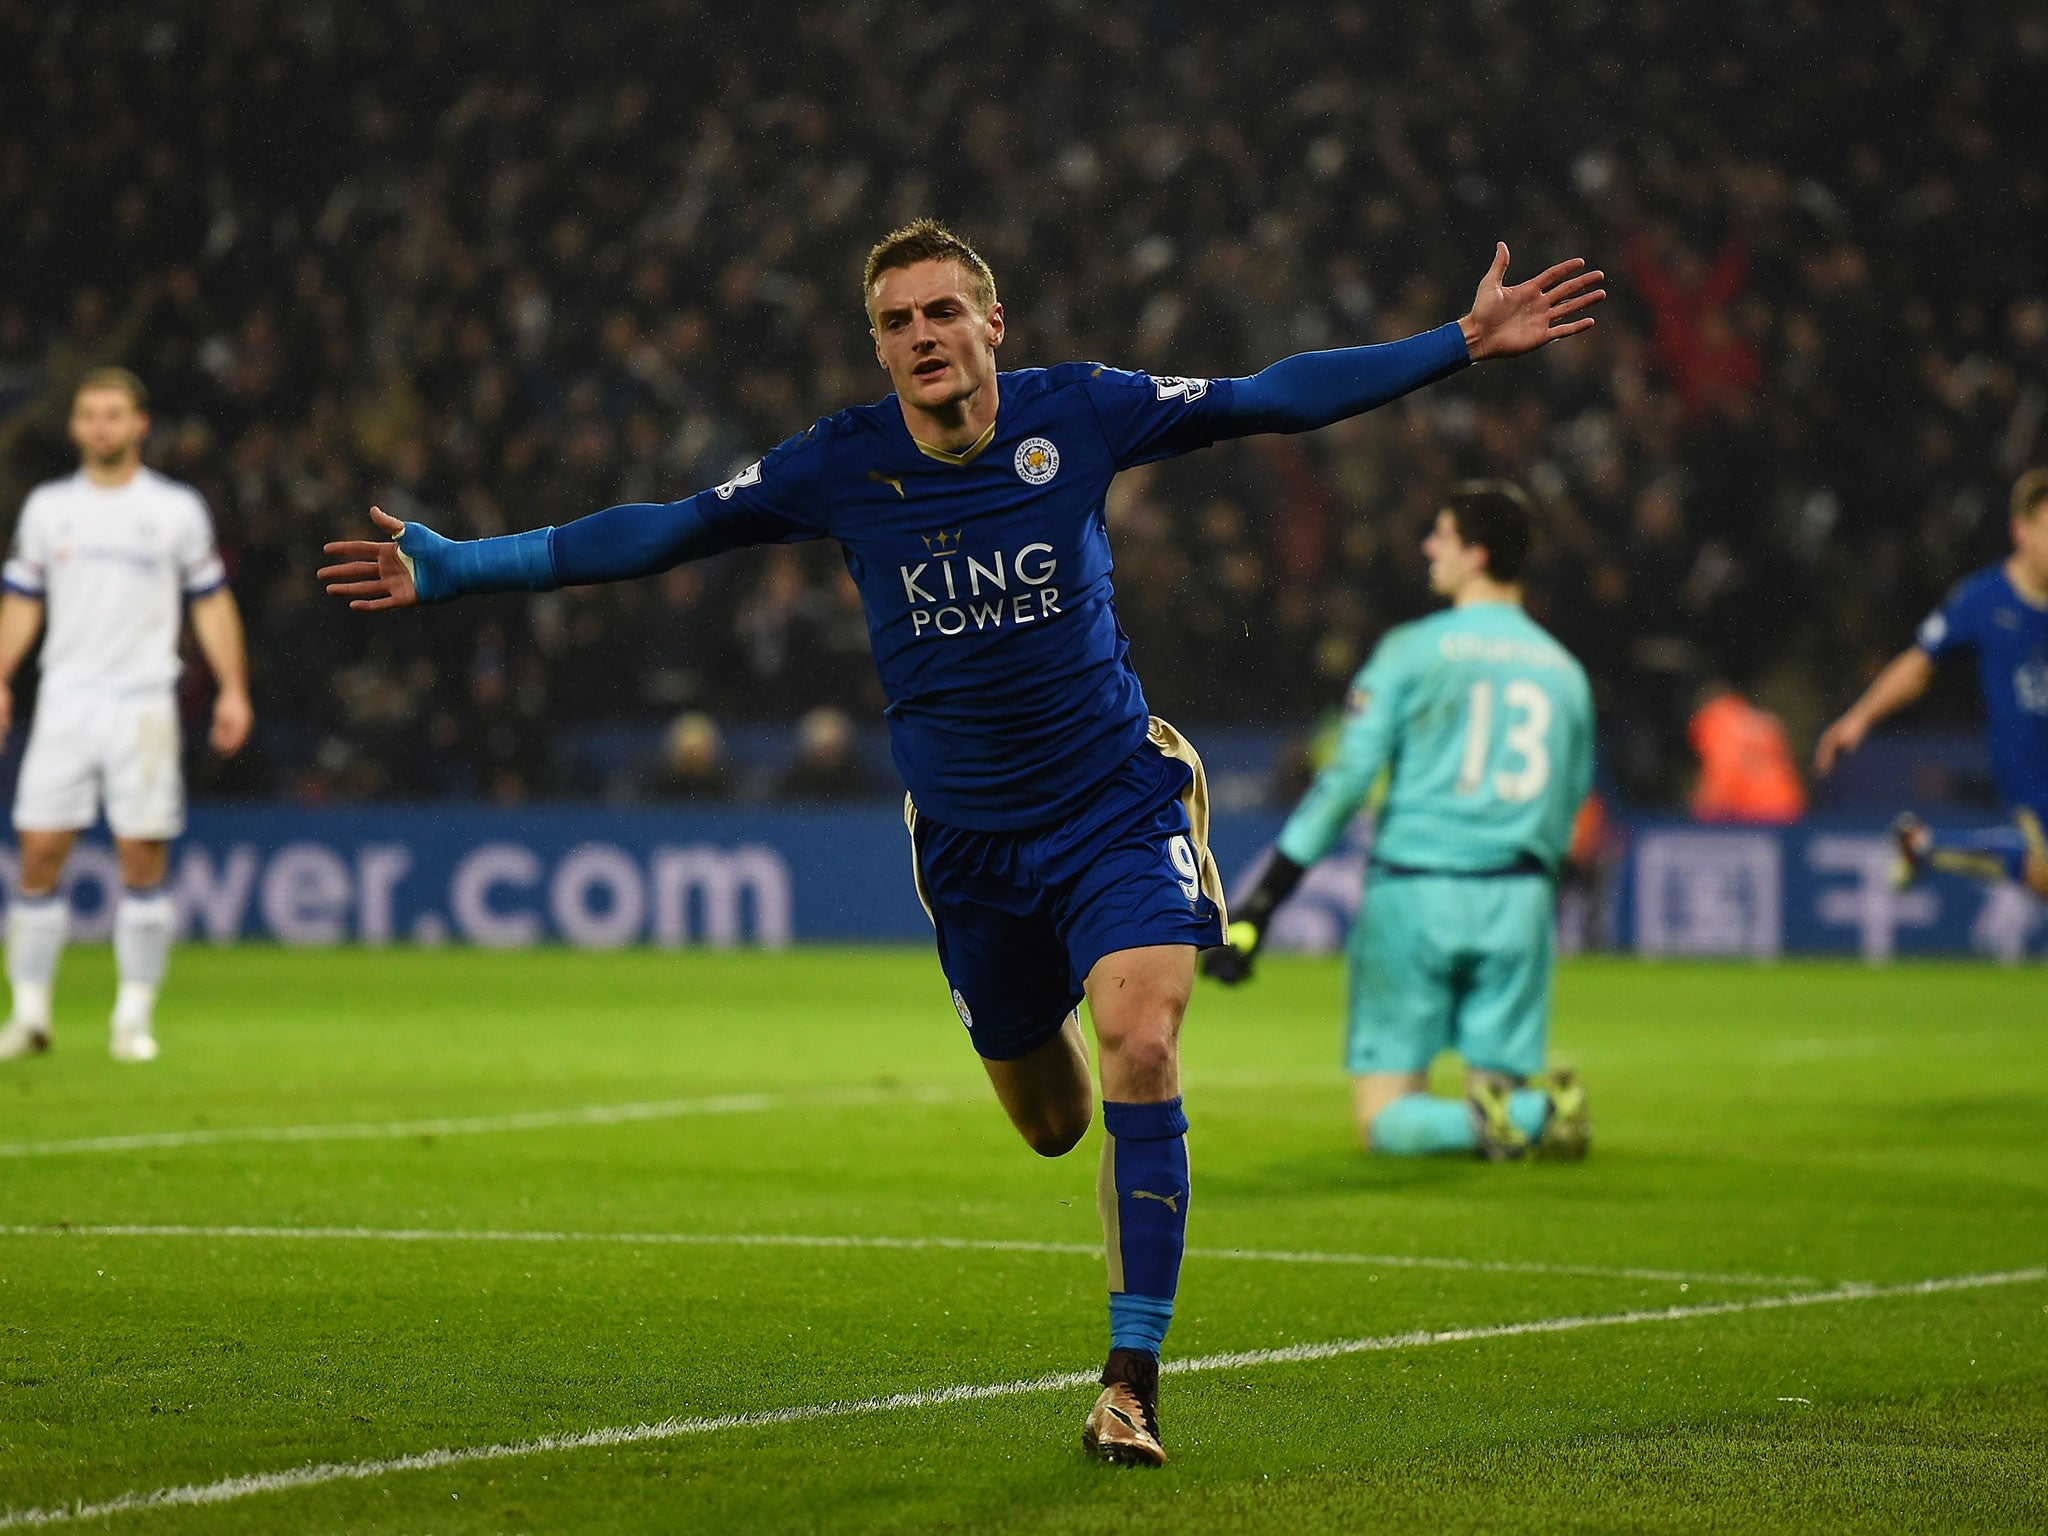 Leicester Vs Chelsea Match Report: Jamie Vardy And Riyad Mahrez On Target To Send Foxes Top Of